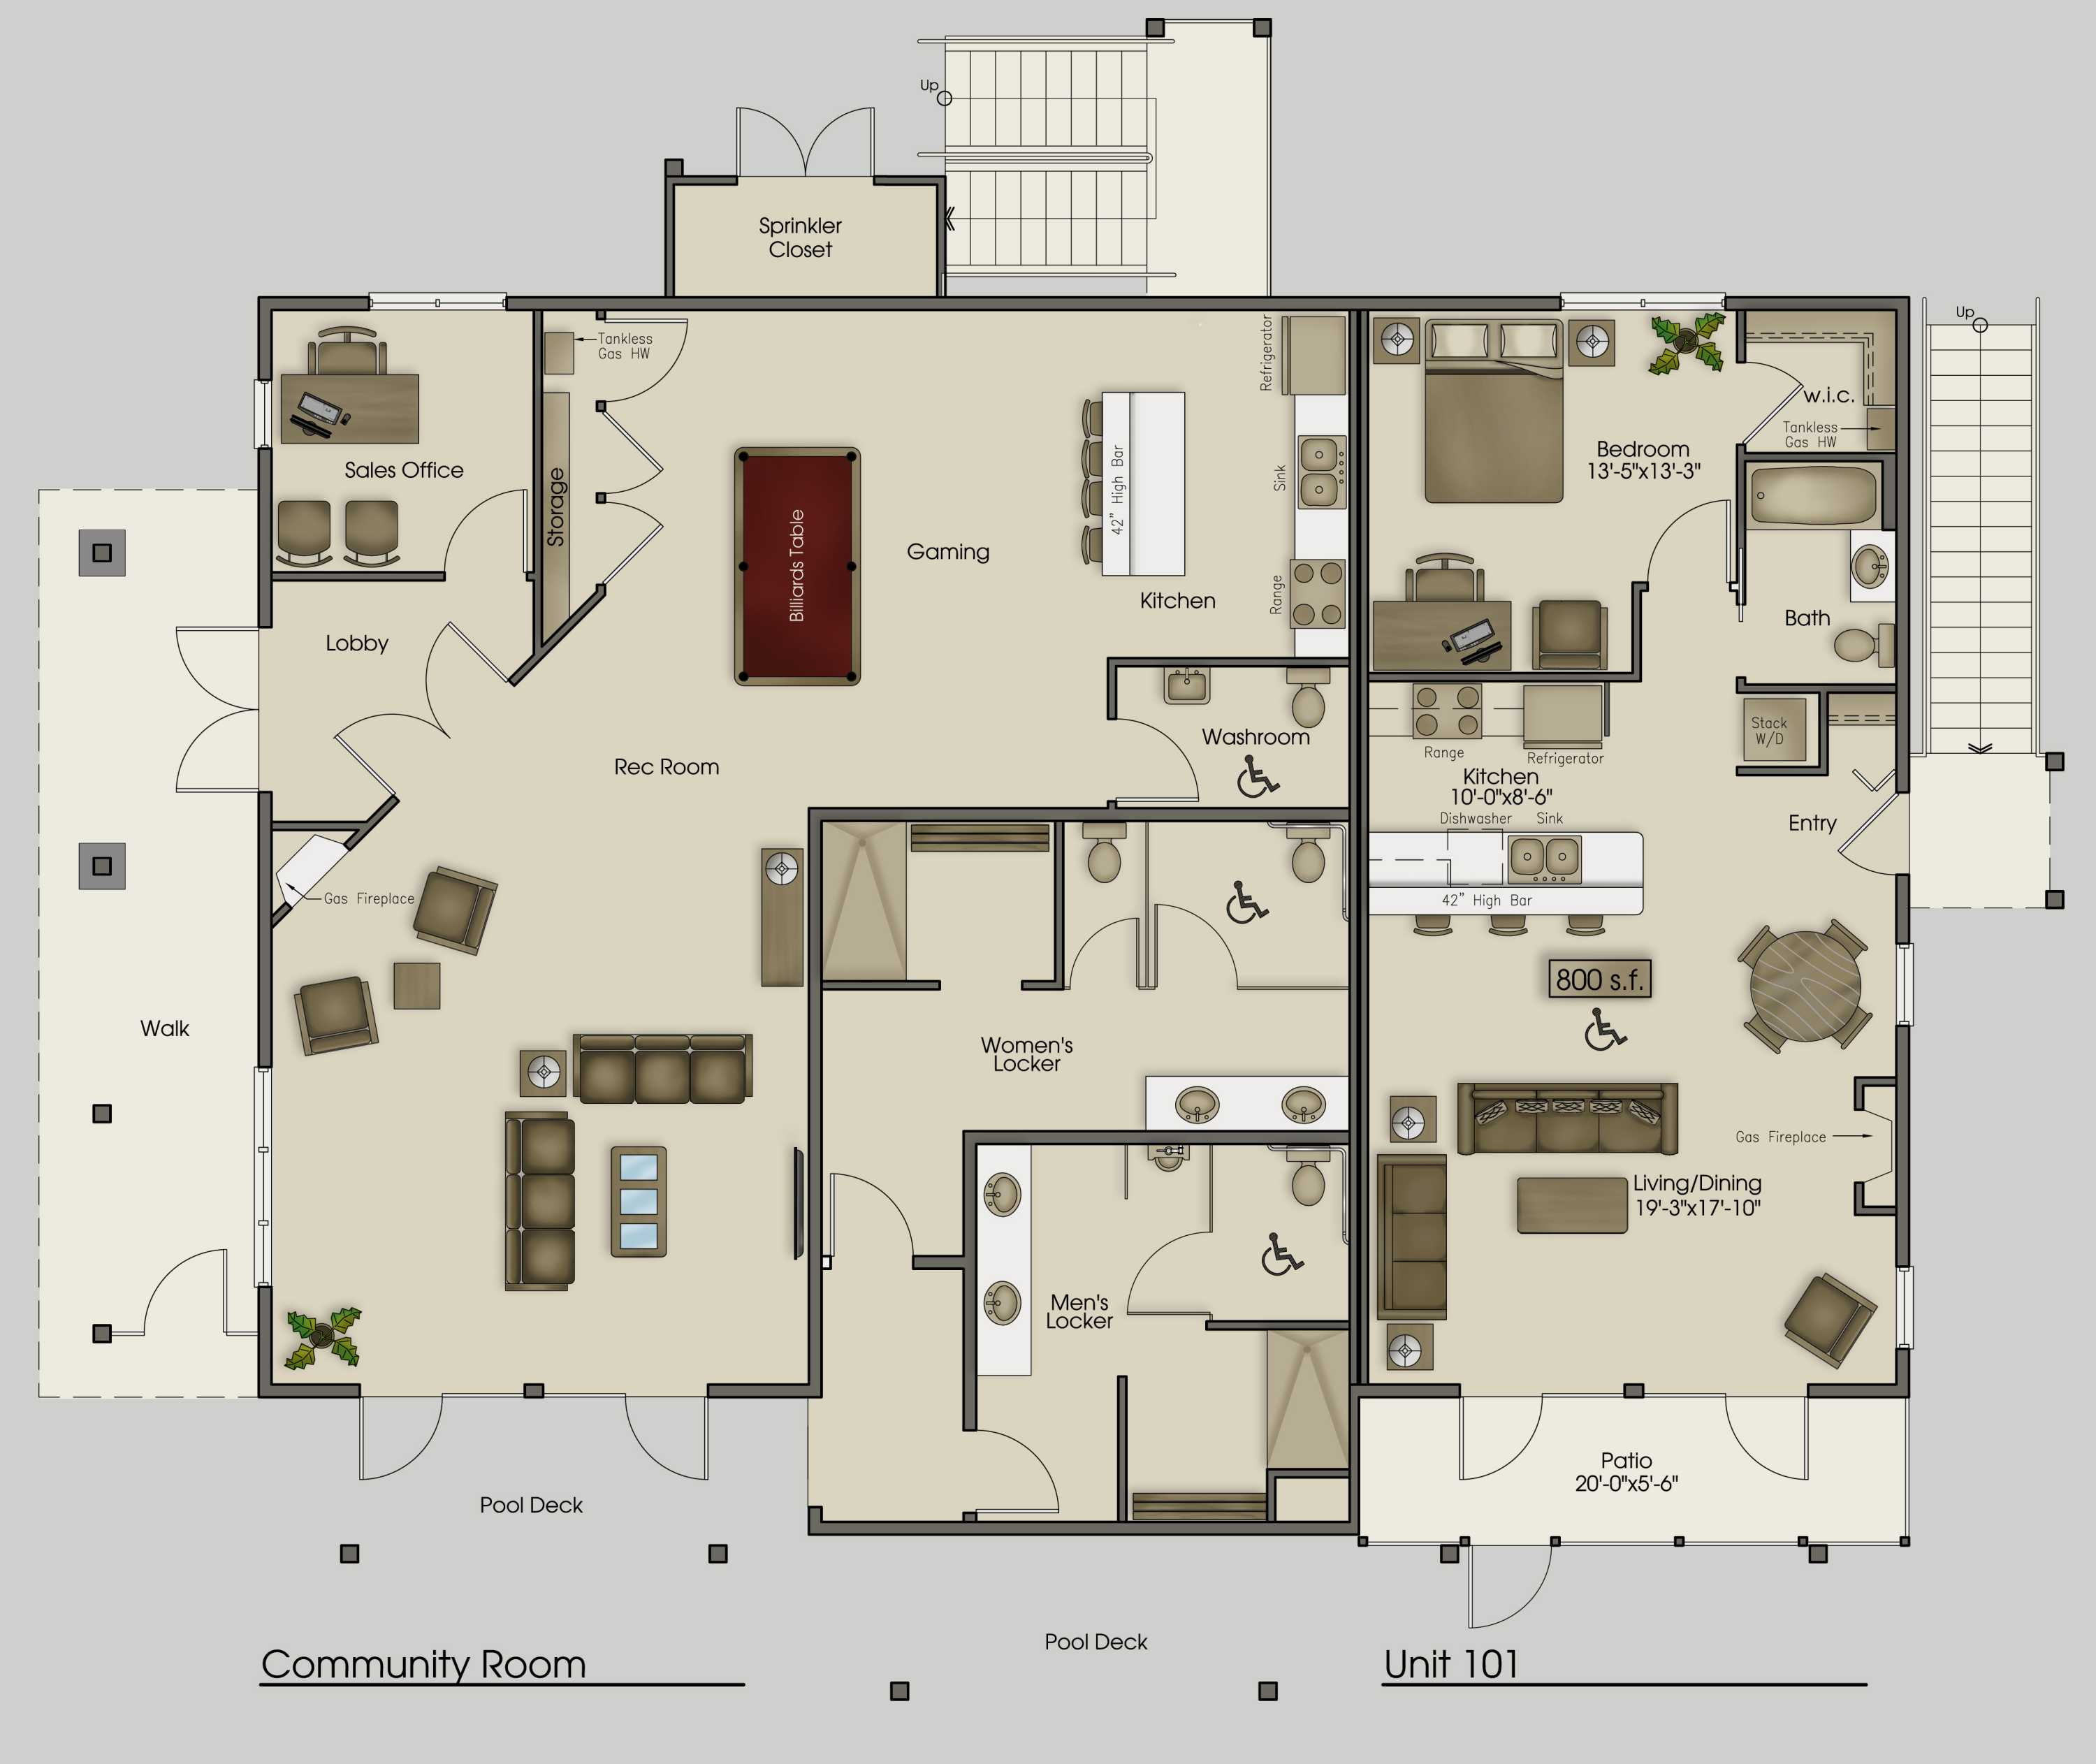 Architecture Office Apartments Cozy Clubhouse Main Floor House Plans 95193